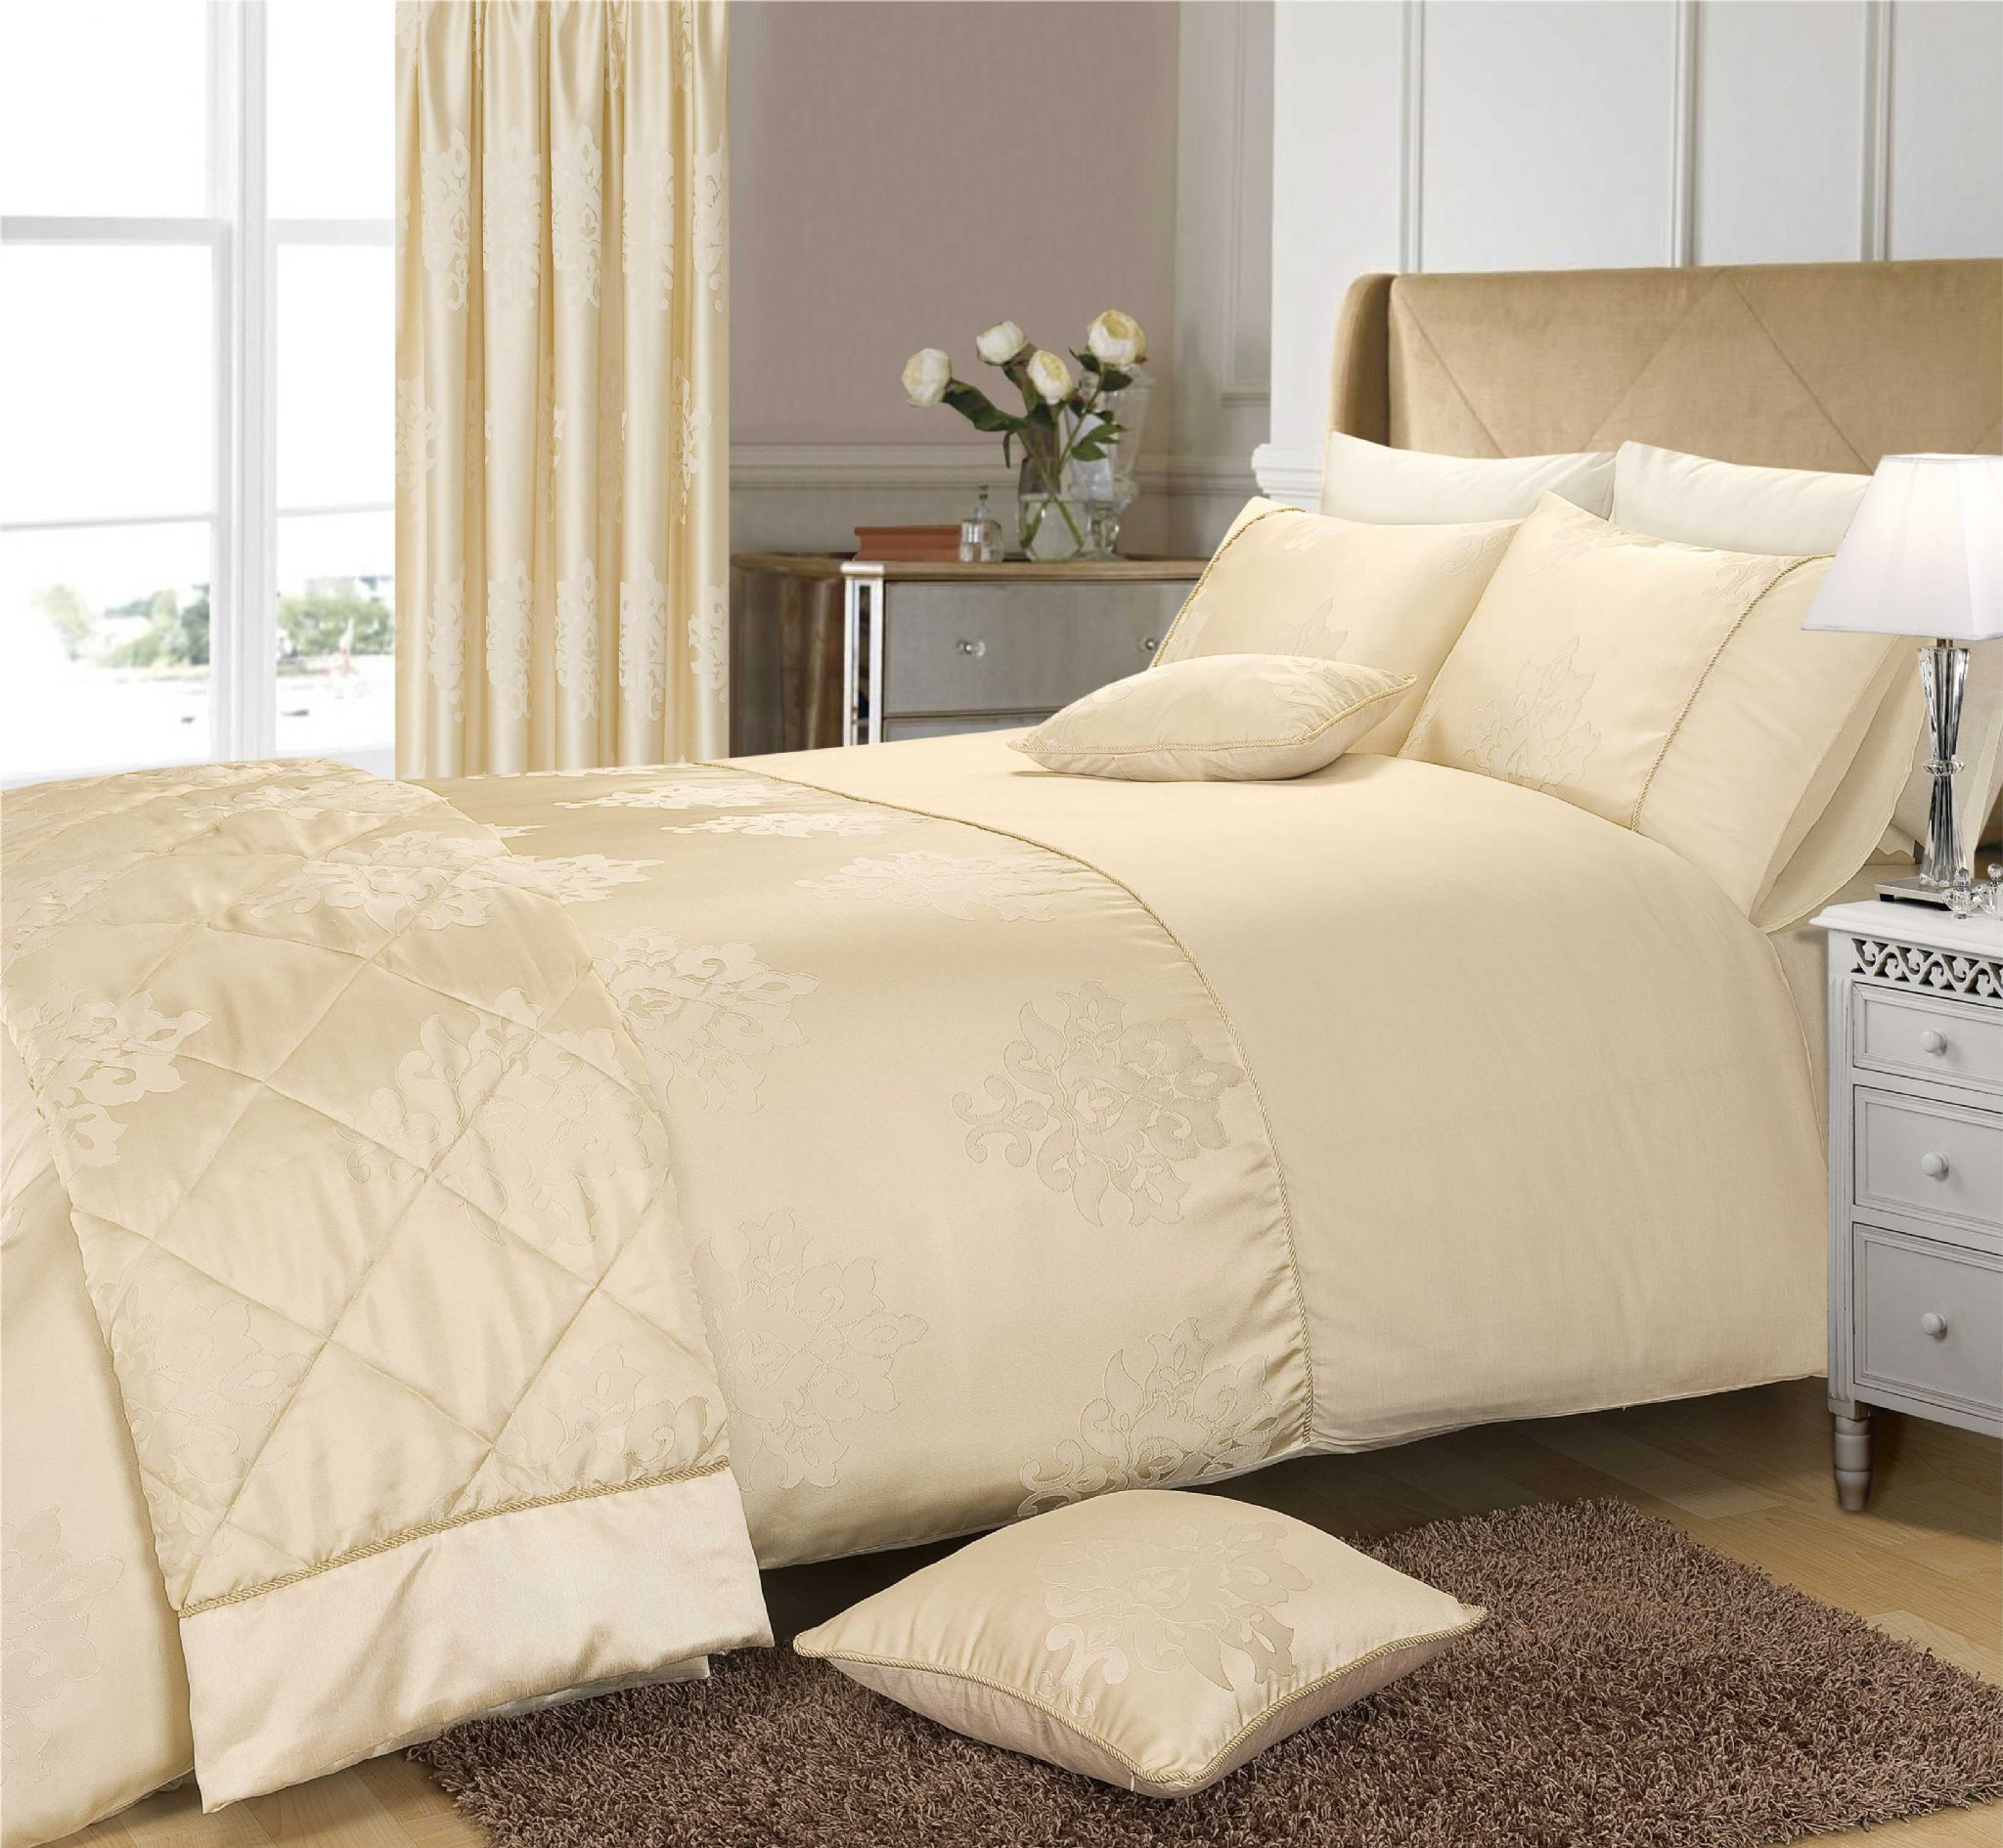 Cream Colour Stylish Floral Jacquard Damask Duvet Cover